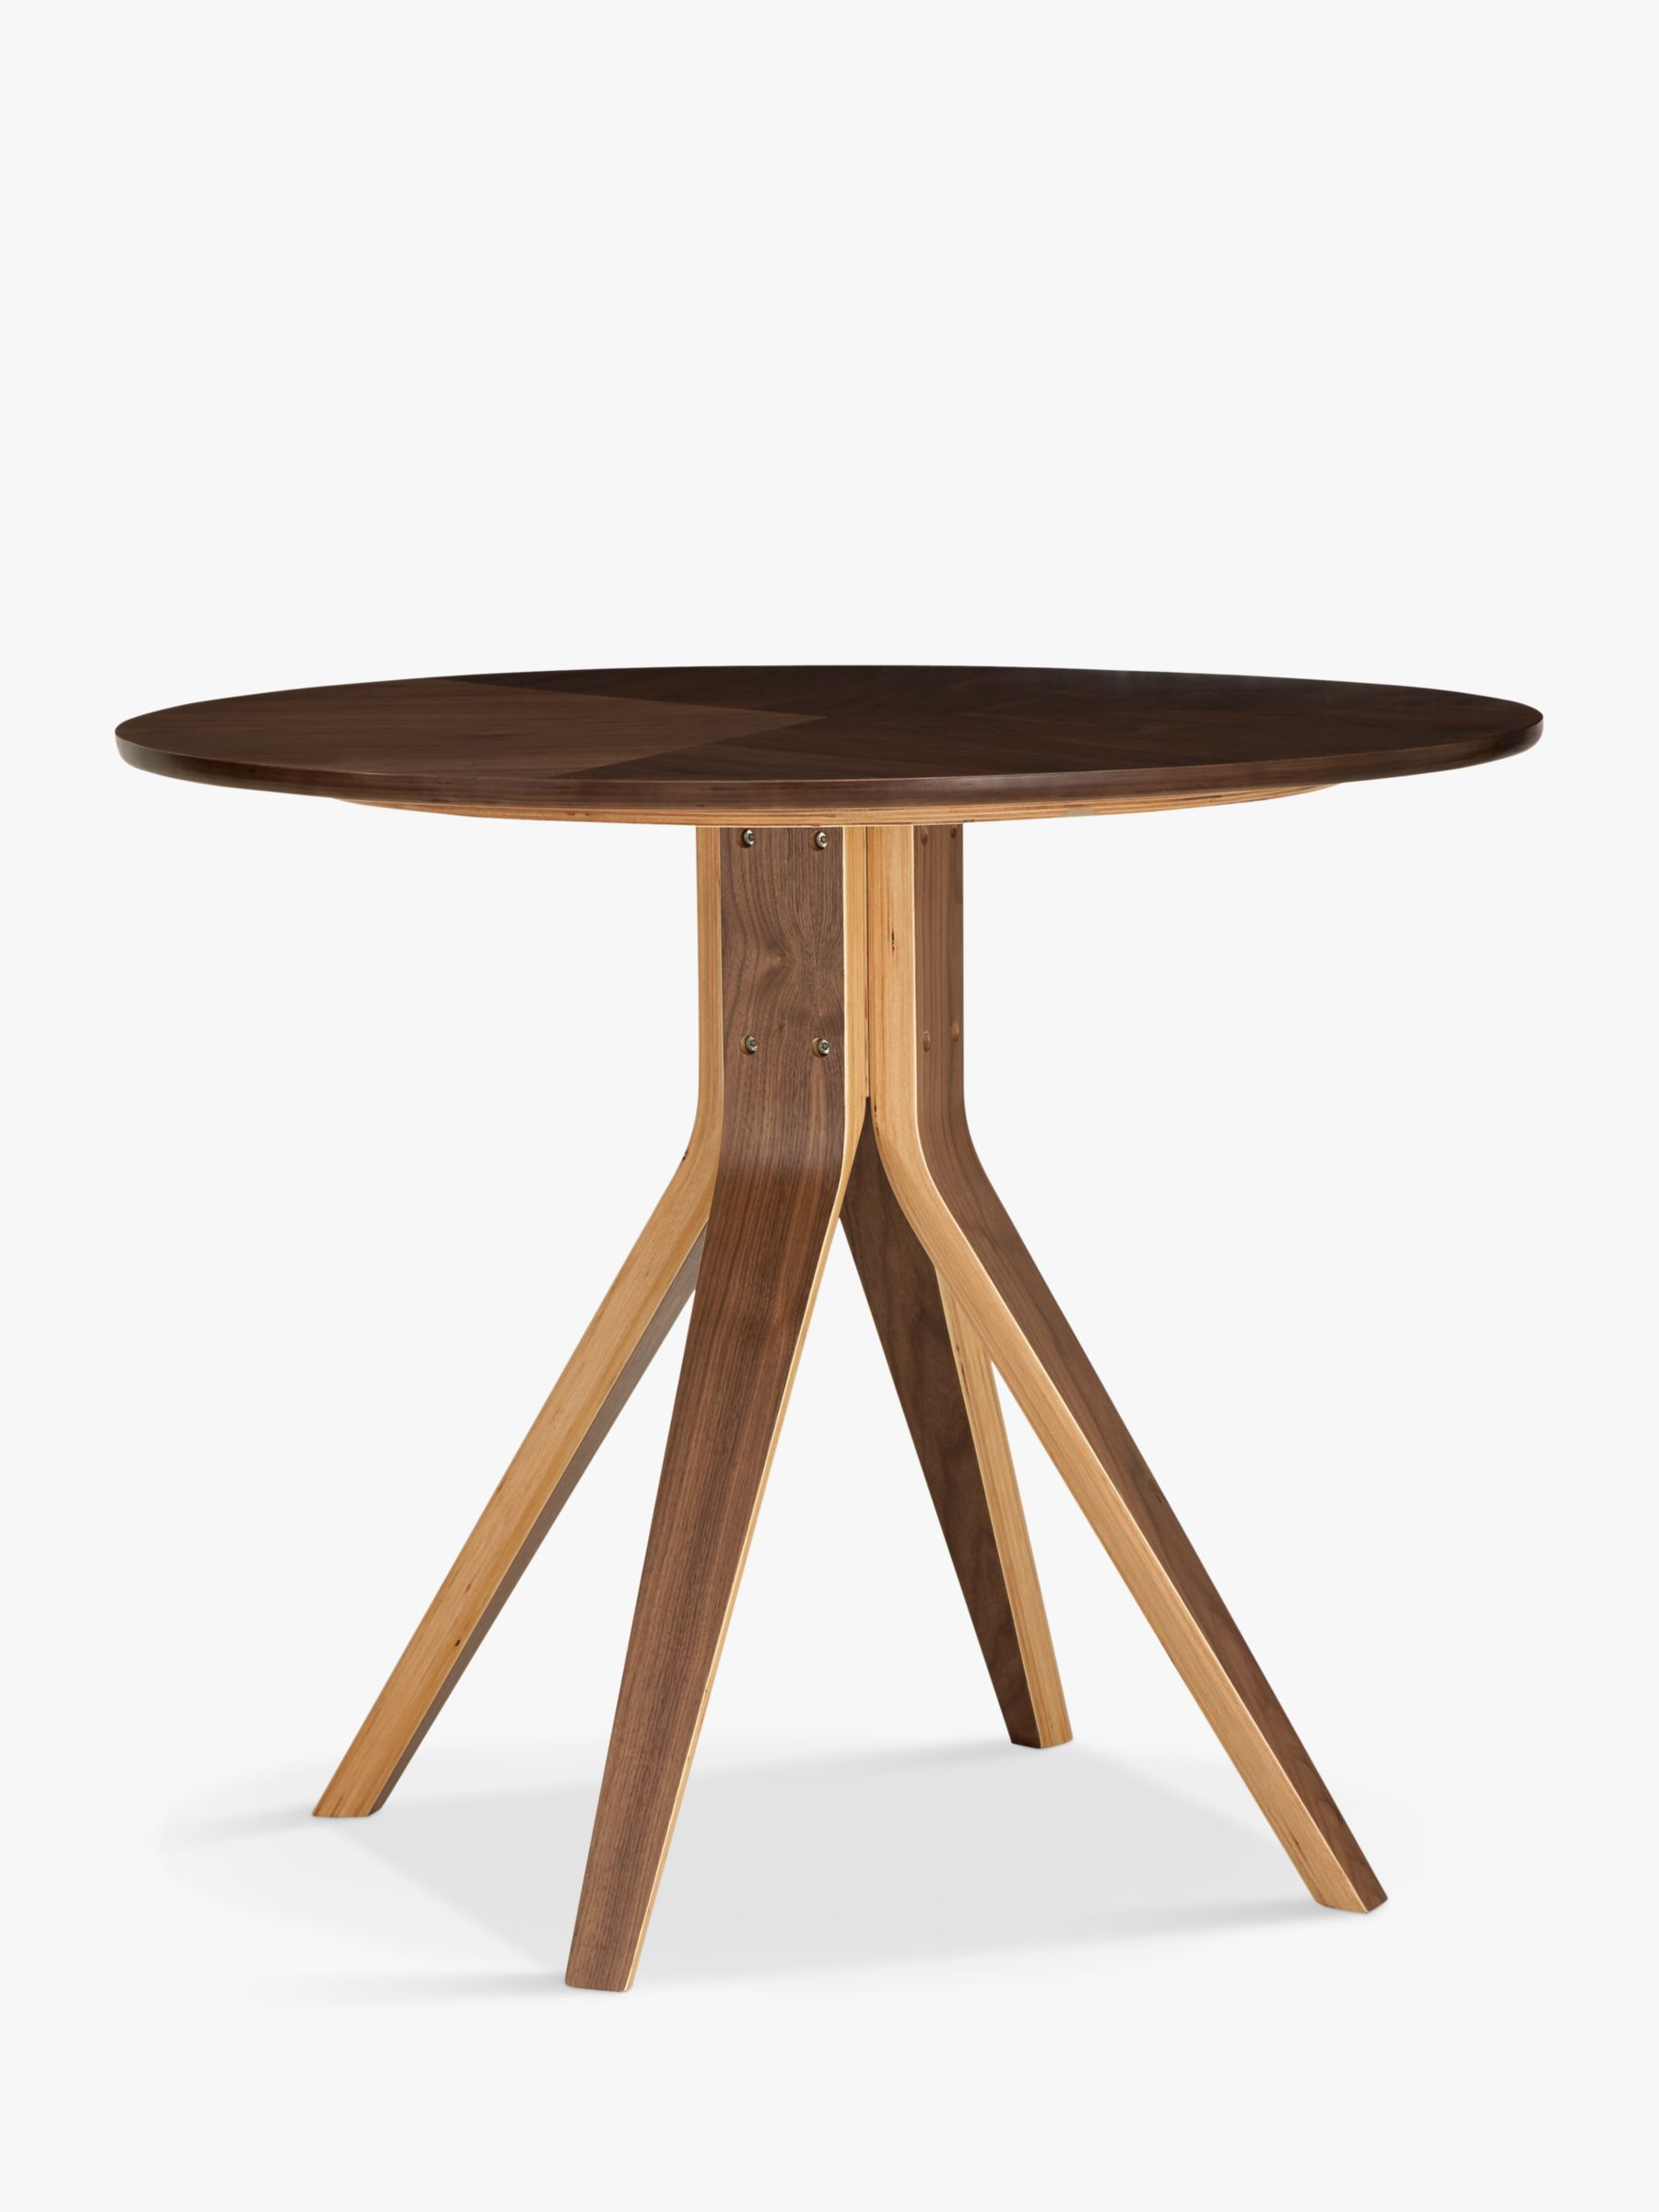 Wales & Wales for John Lewis John Lewis Radar 4 Seater Round Dining Table